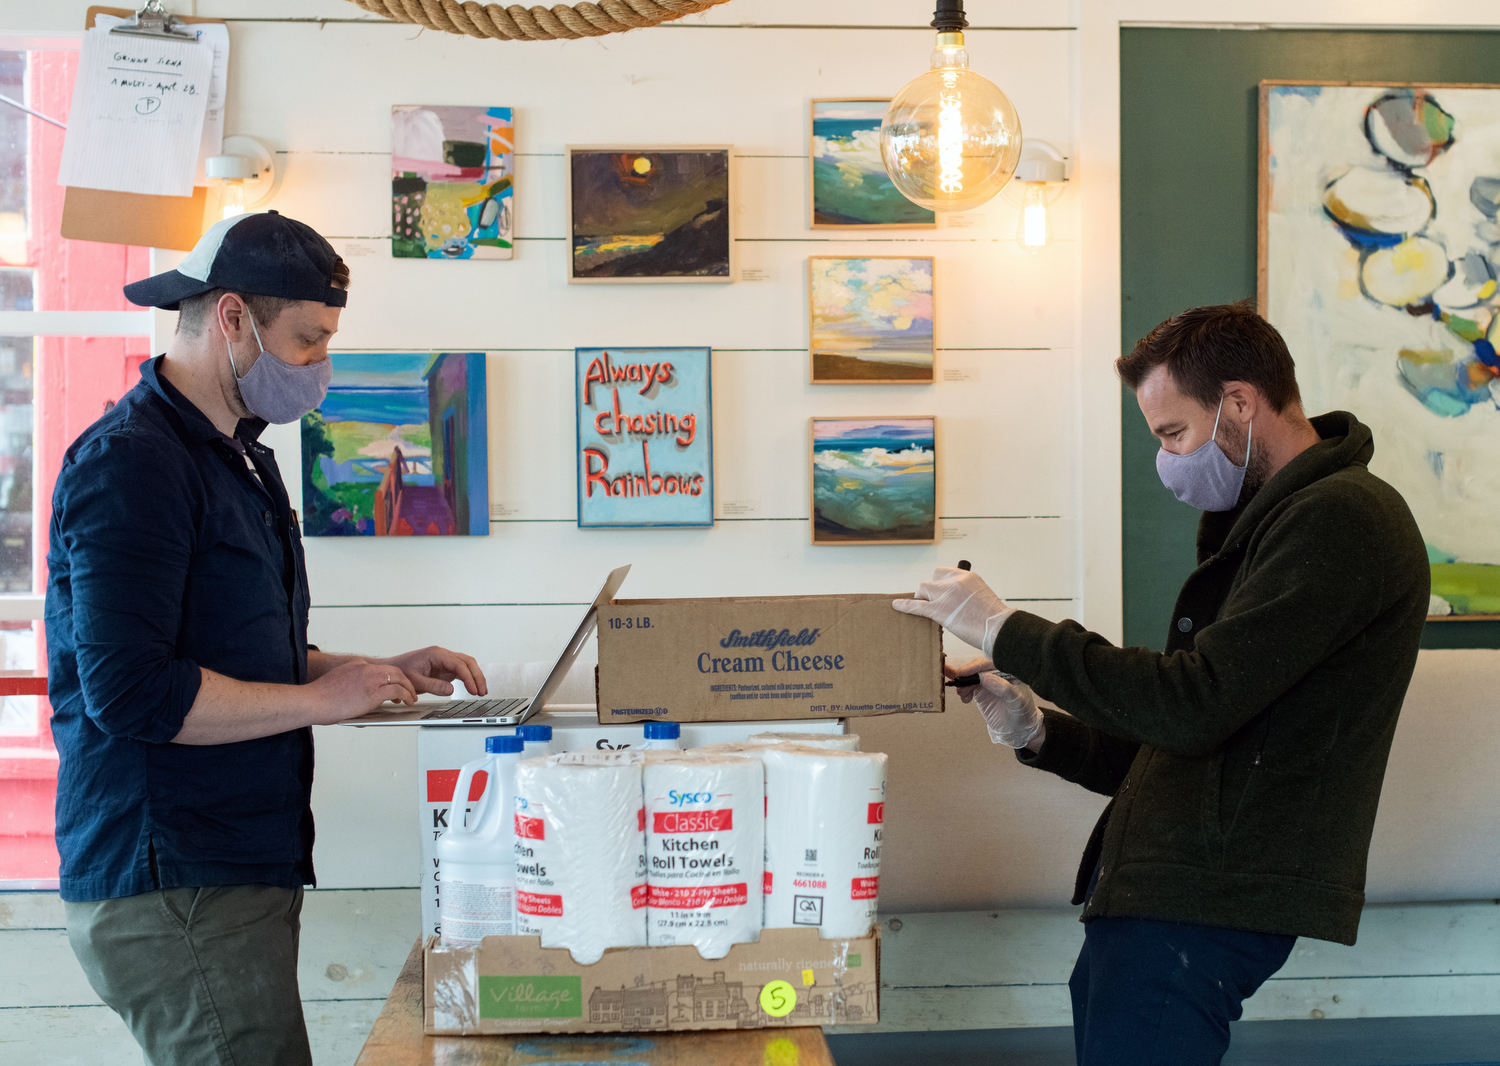 PROVINCETOWN - Rob Anderson, left, and Loic Rossignon co-owners of the Canteen, a popular beachside cafe, prepare grocery orders for delivery and customer pickup on Tuesday, April 21, 2020. Anderson and Rossignon have received over $11,000 in donations to go toward free grocery orders for those who need assistance.